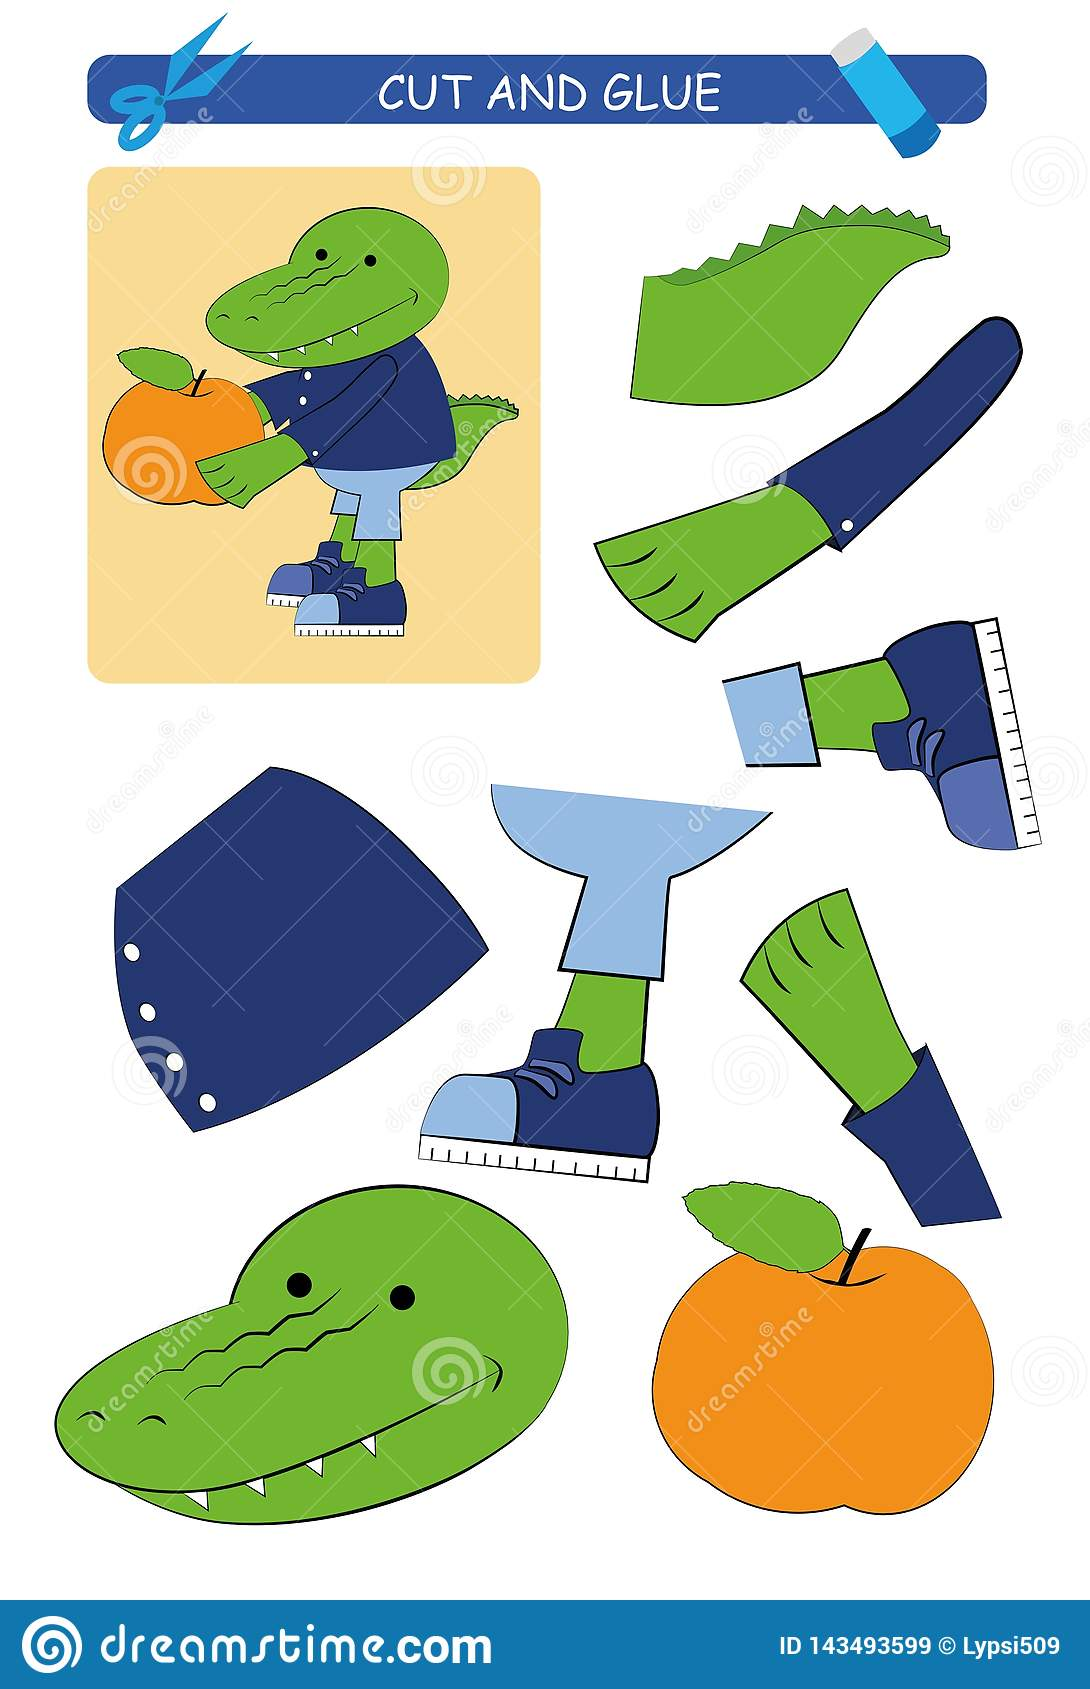 Cut And Glue Worksheet Crocodile Educational Game For